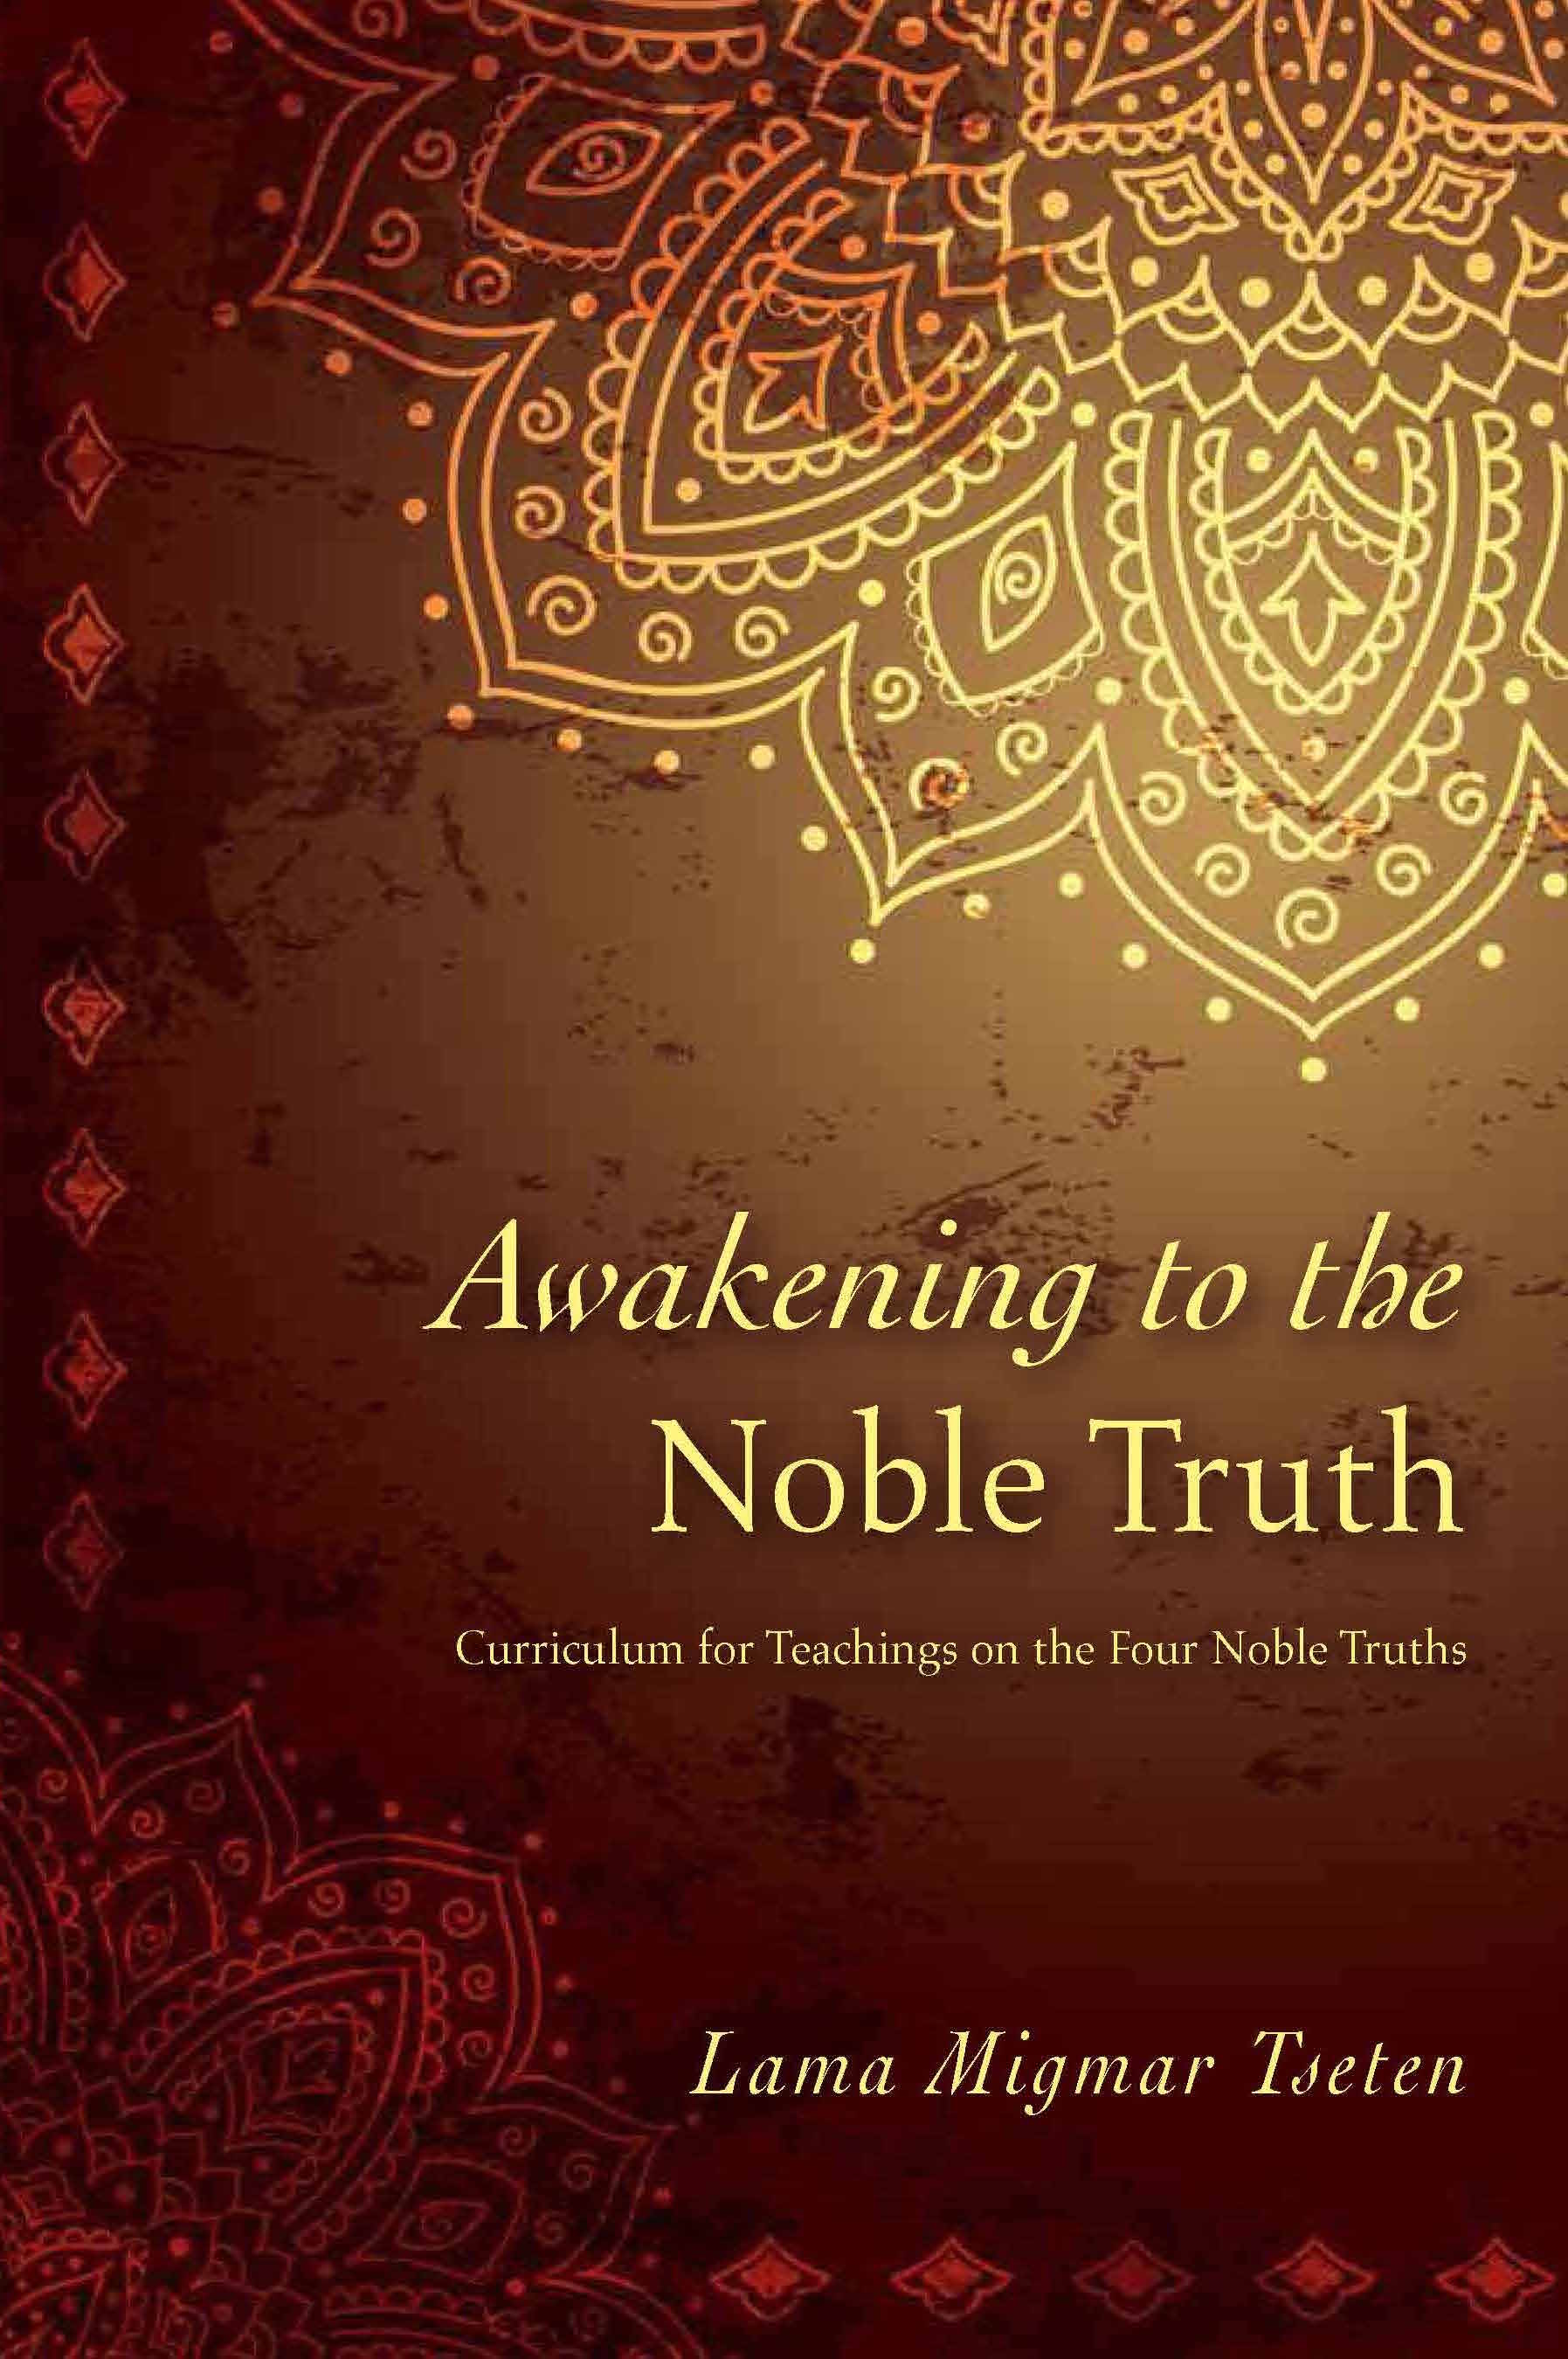 Awakening to the Noble Truth - Curriculum for Teachings on the Four Noble Truth